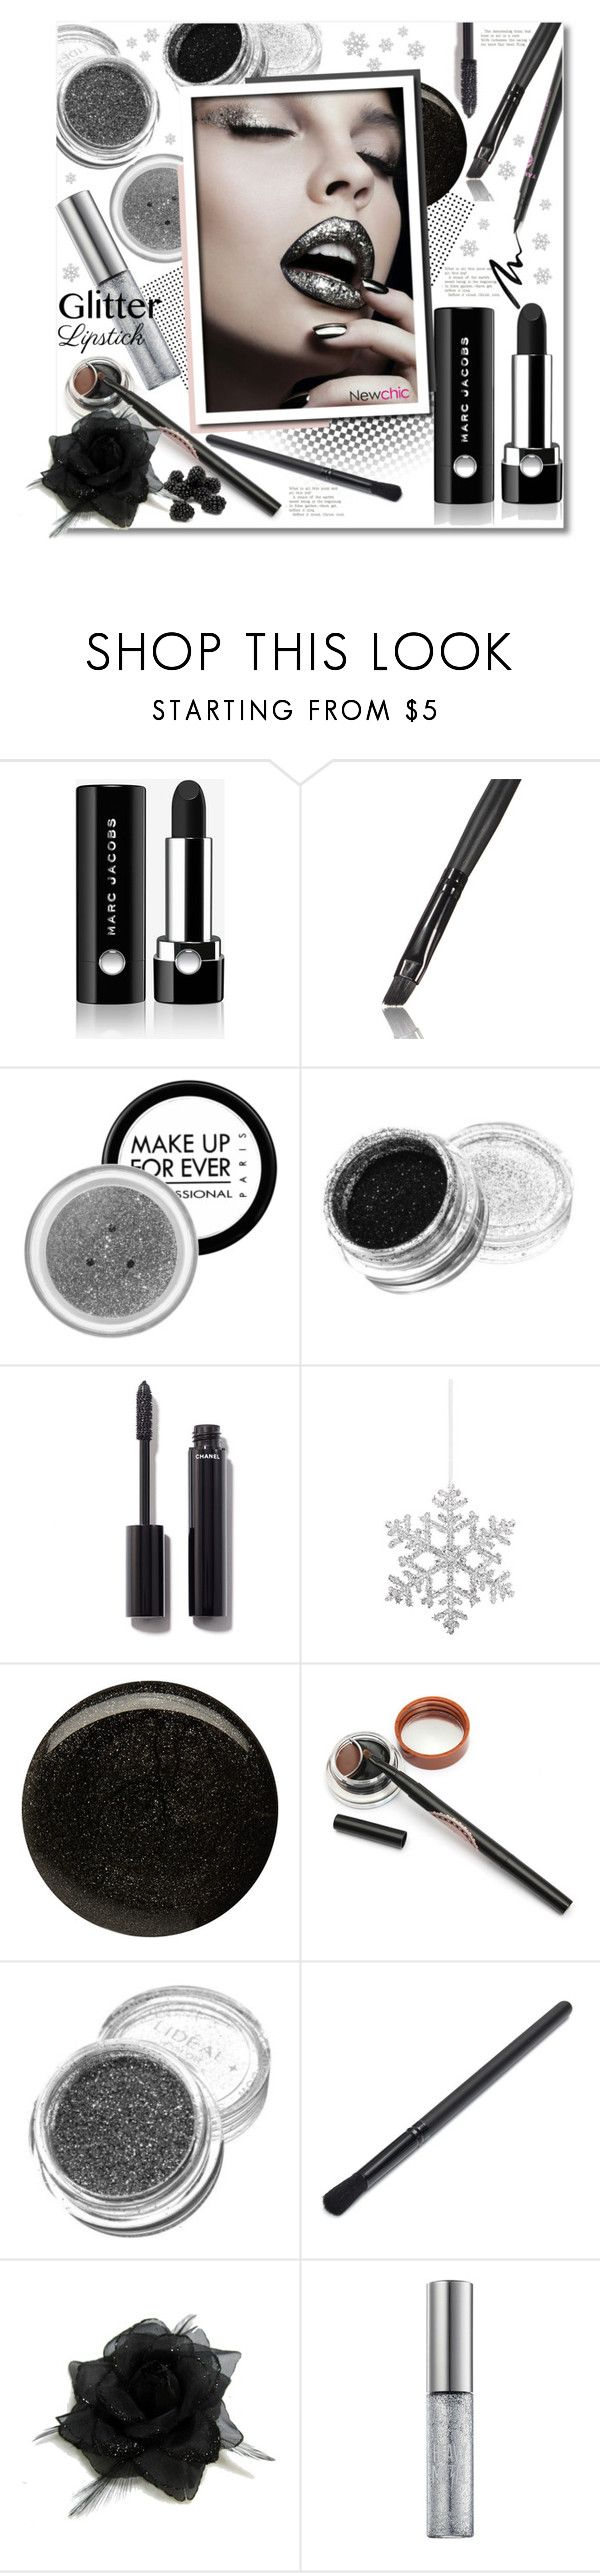 """So Sparkly: Glitter Lips (lovenewchic)"" by anitadz ❤ liked on Polyvore featuring beauty, Marc Jacobs, MAKE UP FOR EVER, Chanel, Shishi, Balmain, Urban Decay, Eyeko and glitterlips"